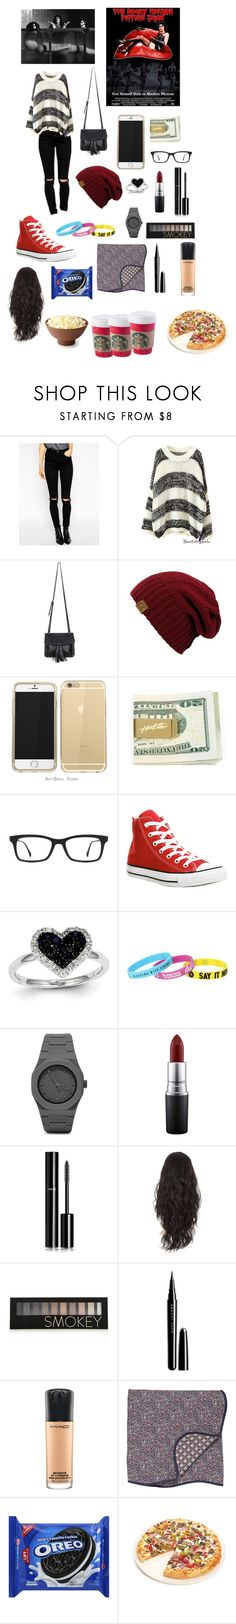 """""""Movie with My New Squad"""" by kathrynclifford on Polyvore featuring ASOS, Chicnova Fashion, Ray-Ban, Converse, Kevin Jewelers, CC, MAC Cosmetics, Chanel, Forever 21 and Marc Jacobs"""